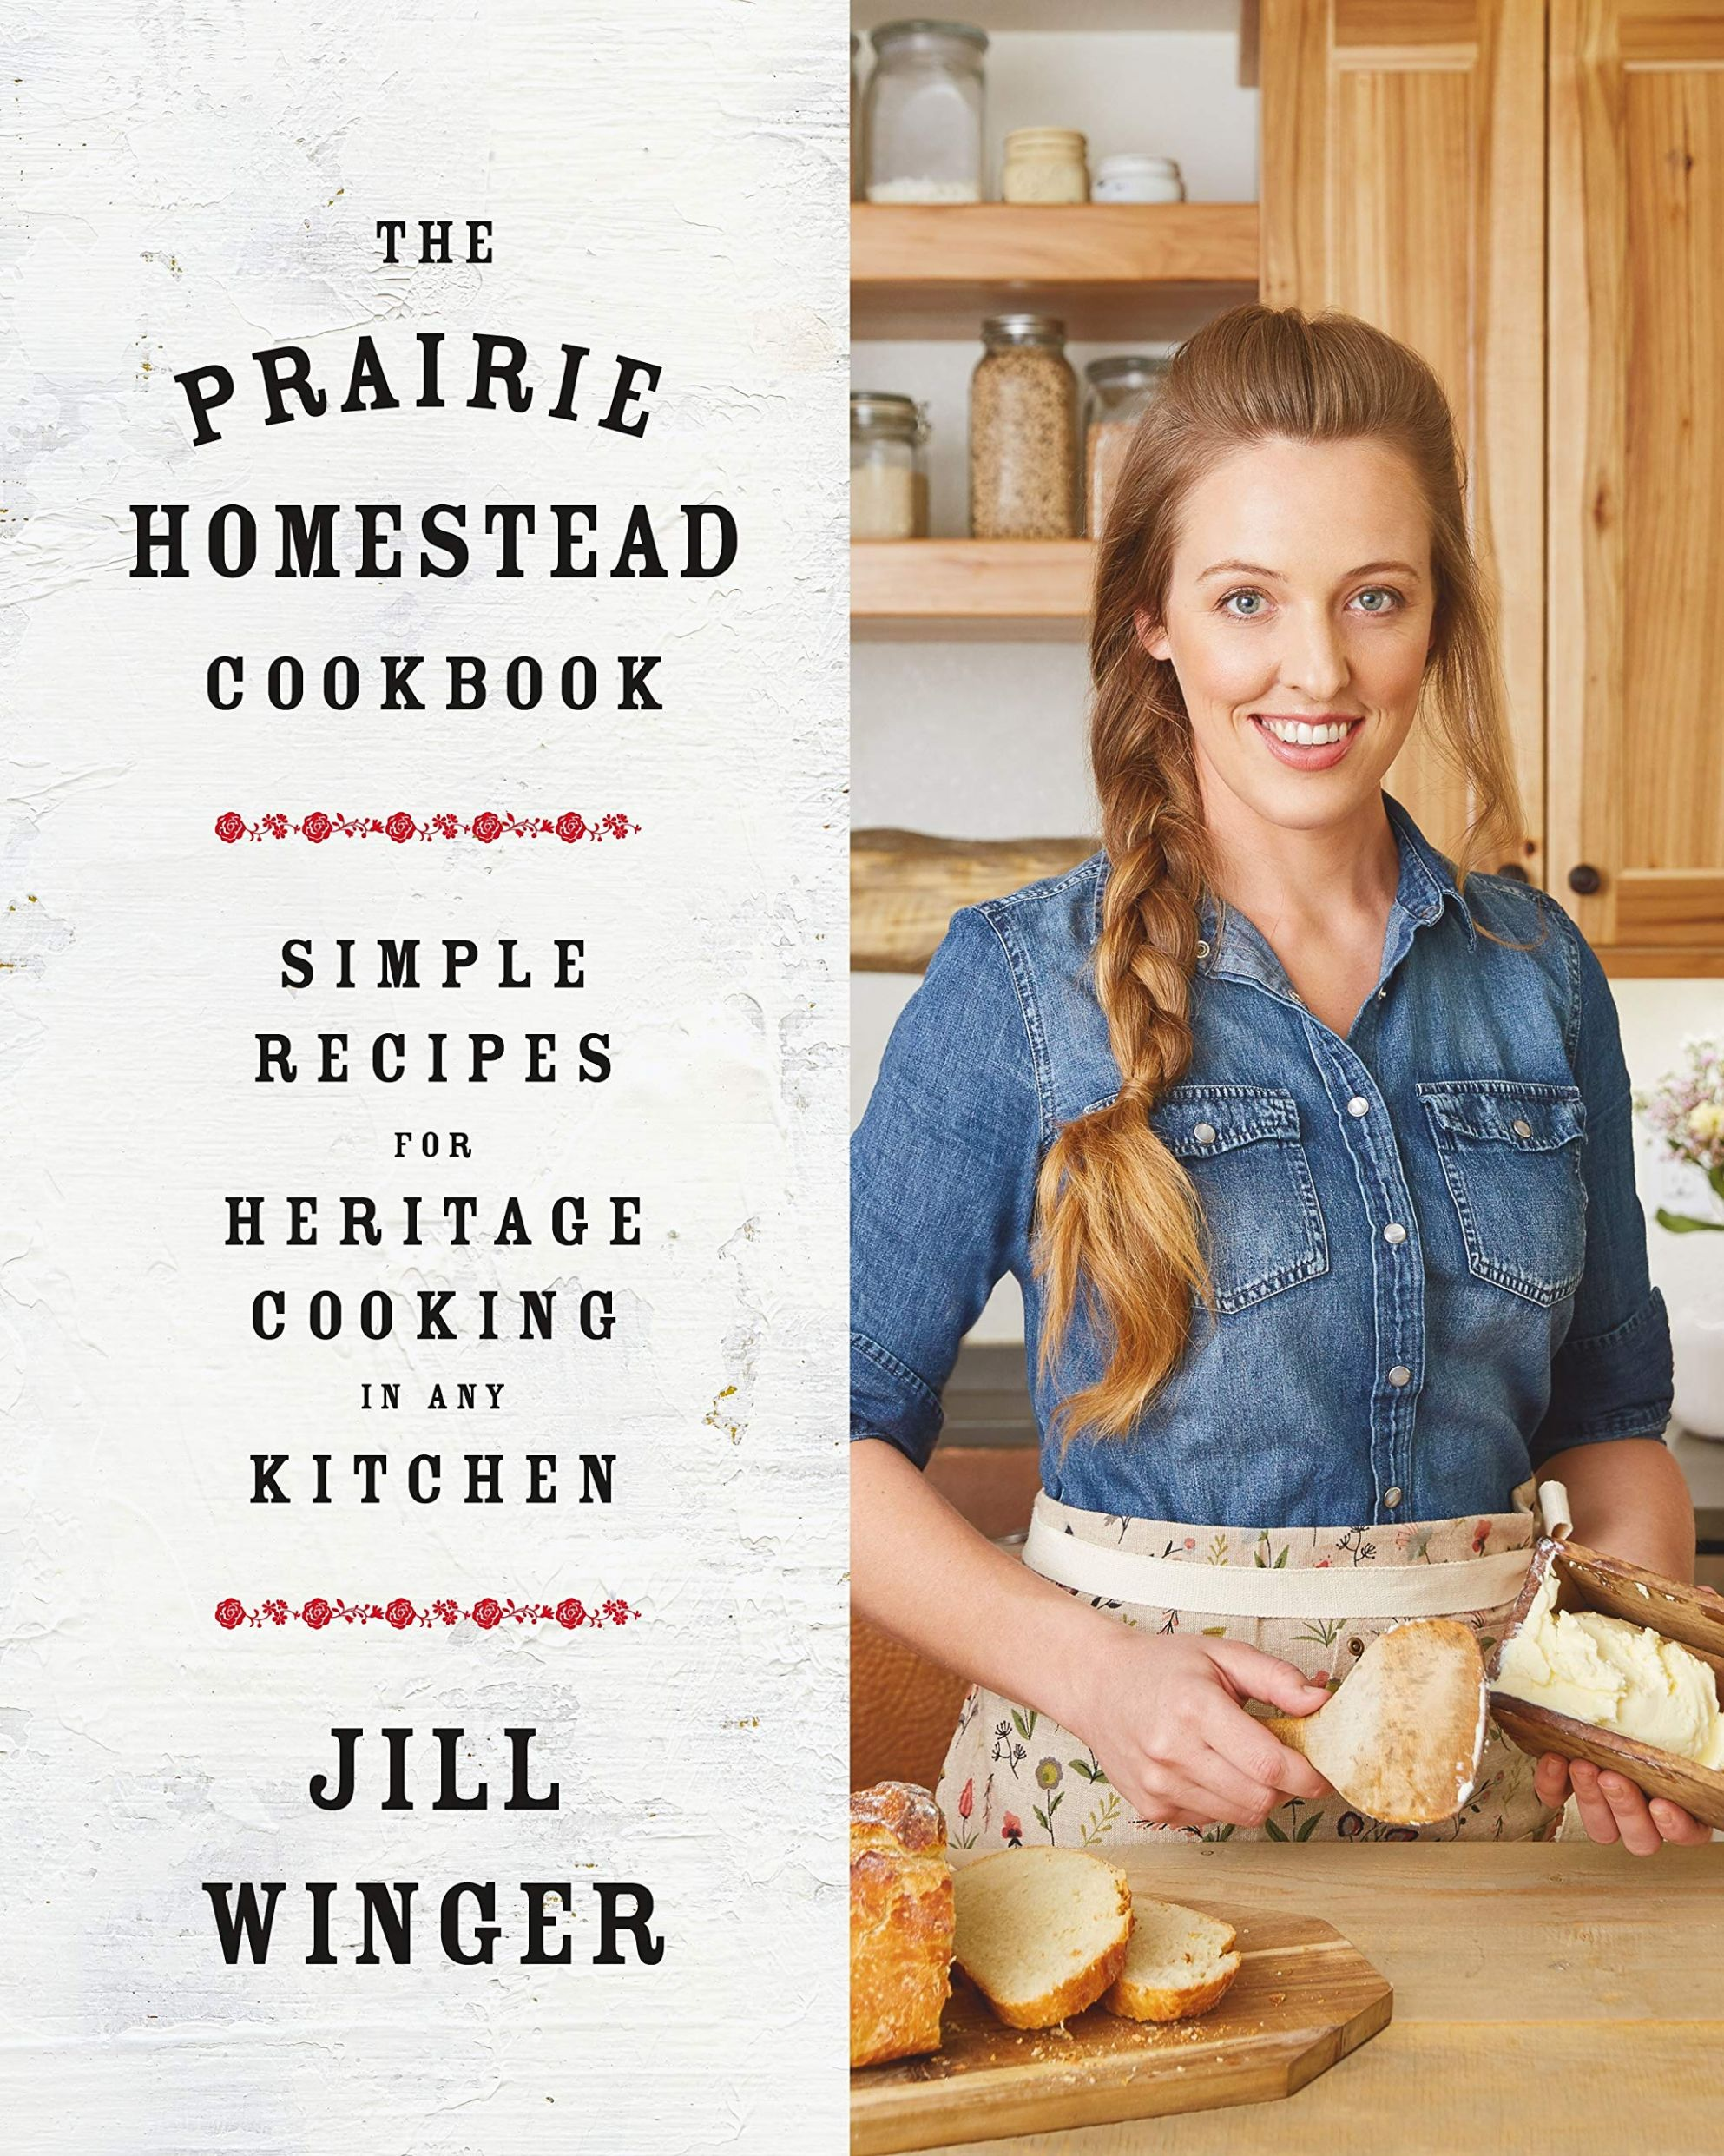 The Prairie Homestead Cookbook: Simple Recipes for Heritage ..